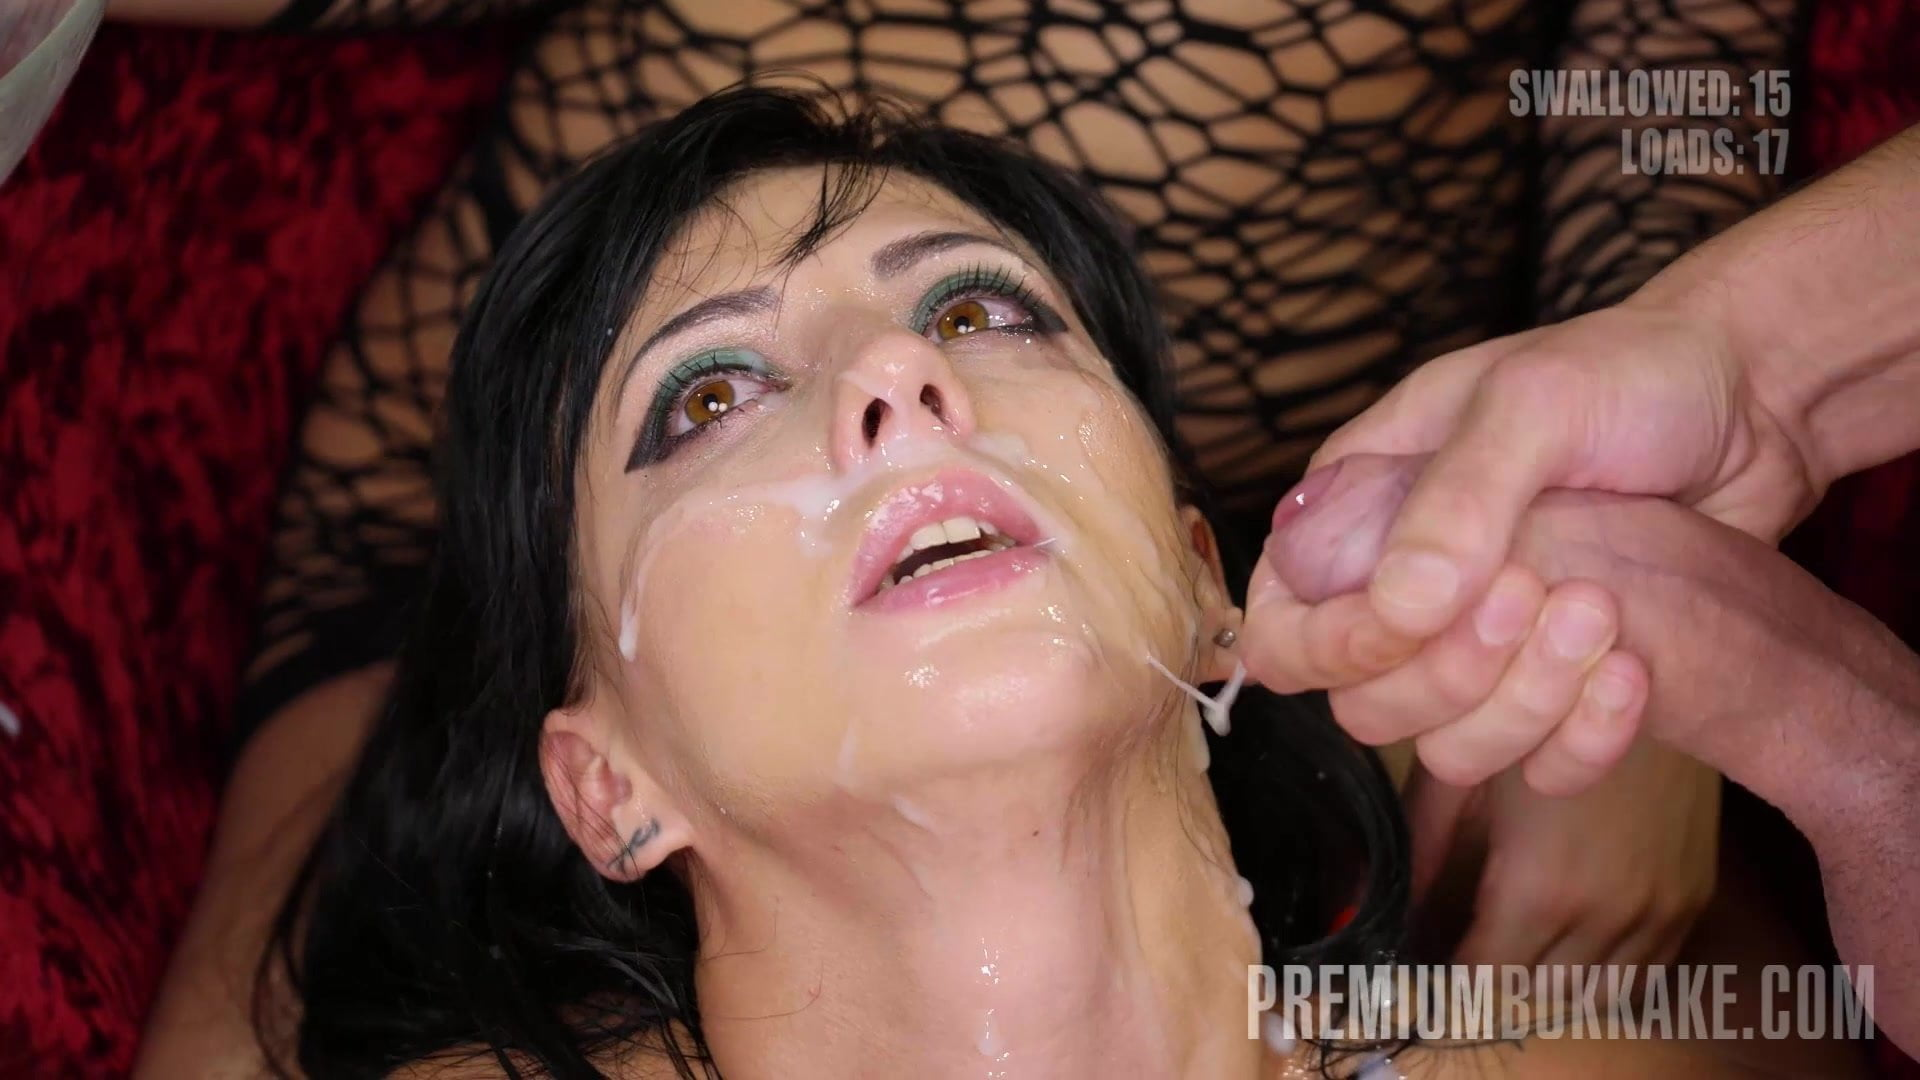 Celeb blowjob pay join member credit